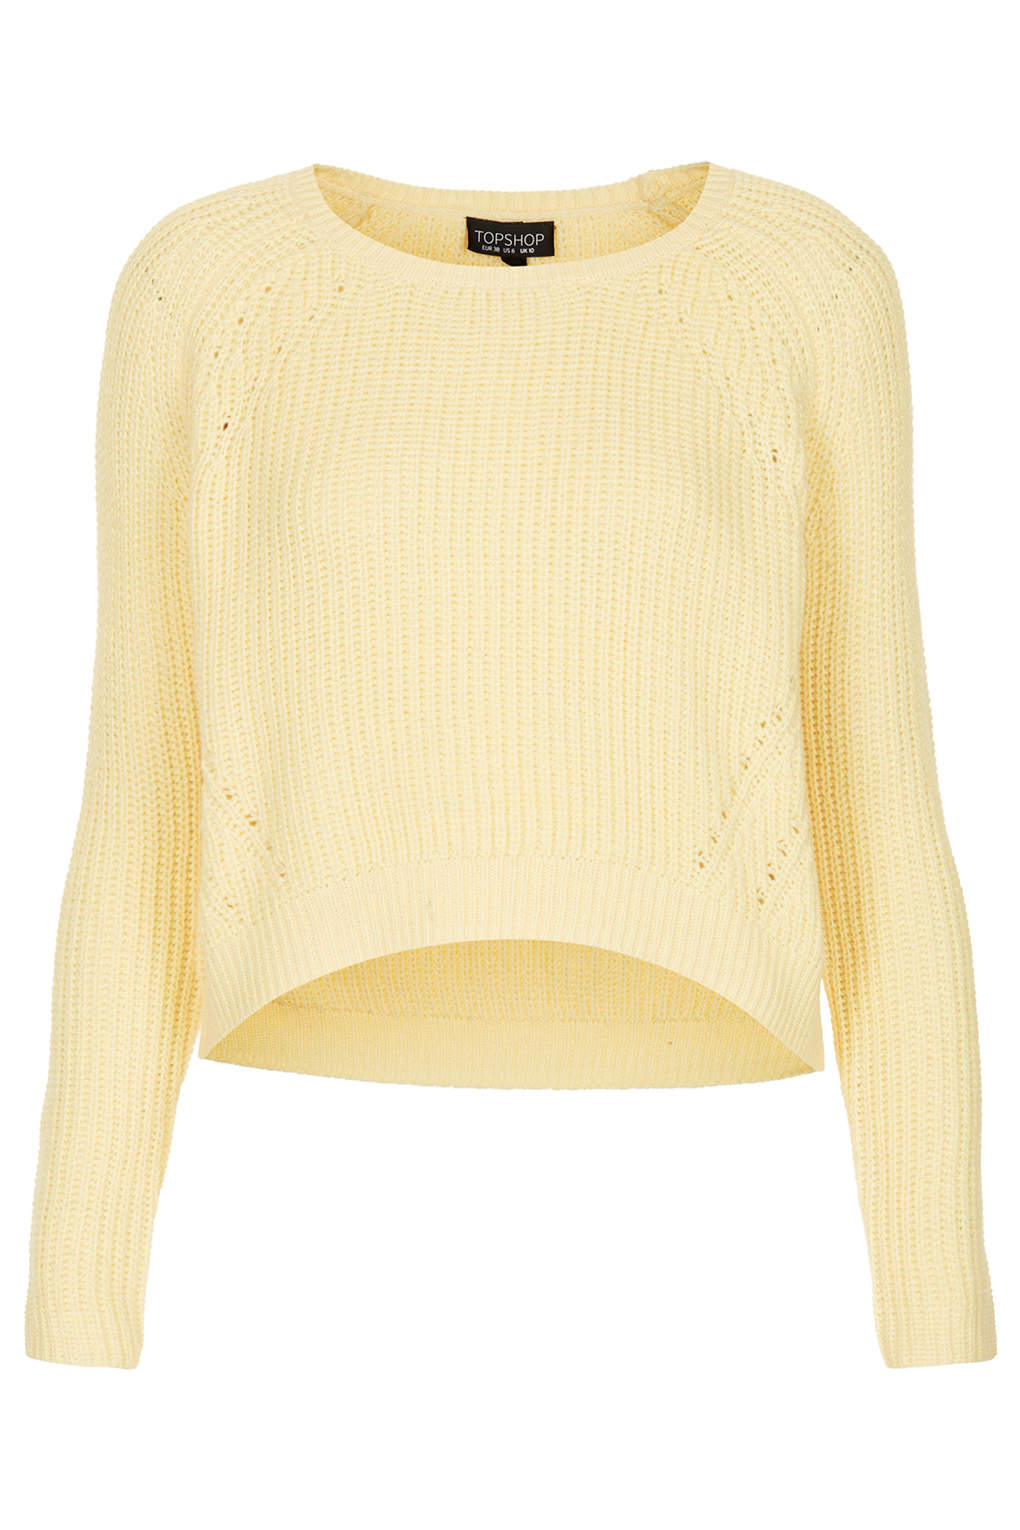 Lyst - TOPSHOP Knitted Curve Crop Jumper in Yellow c756c31c1